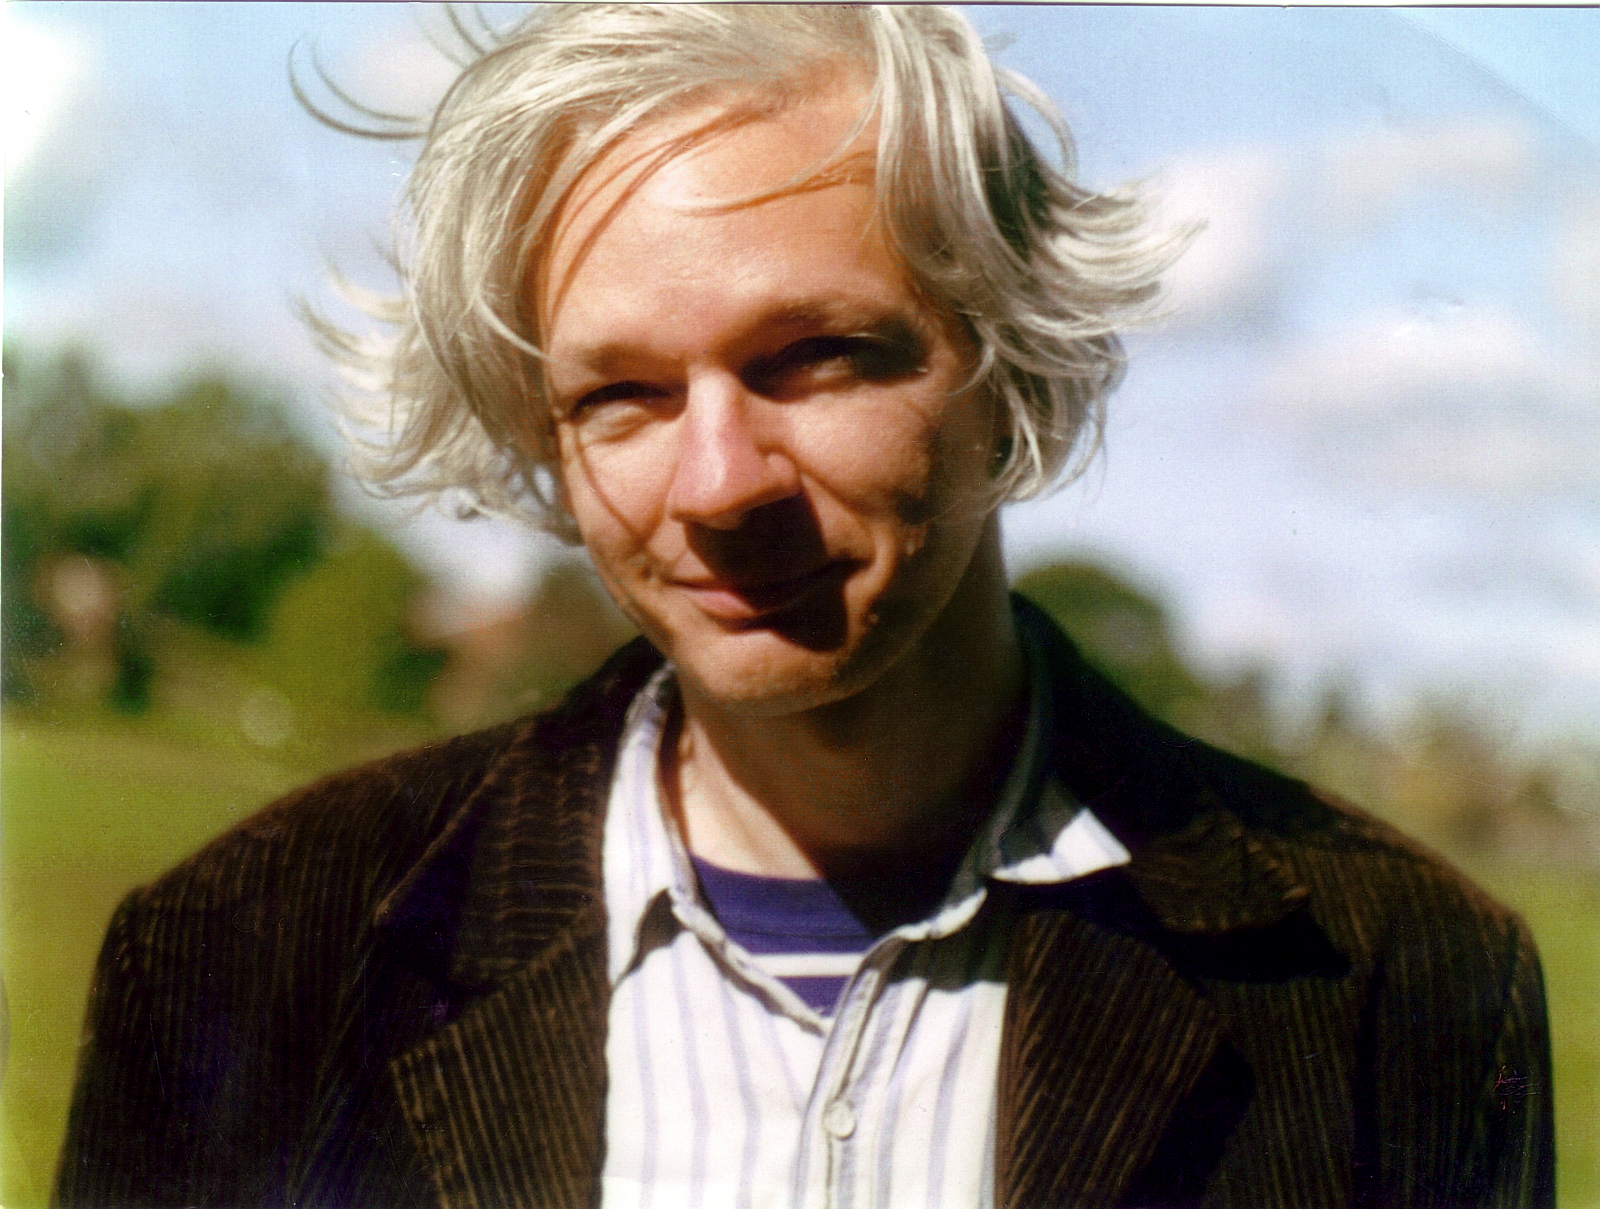 Fil:Julian Assange full.jpg